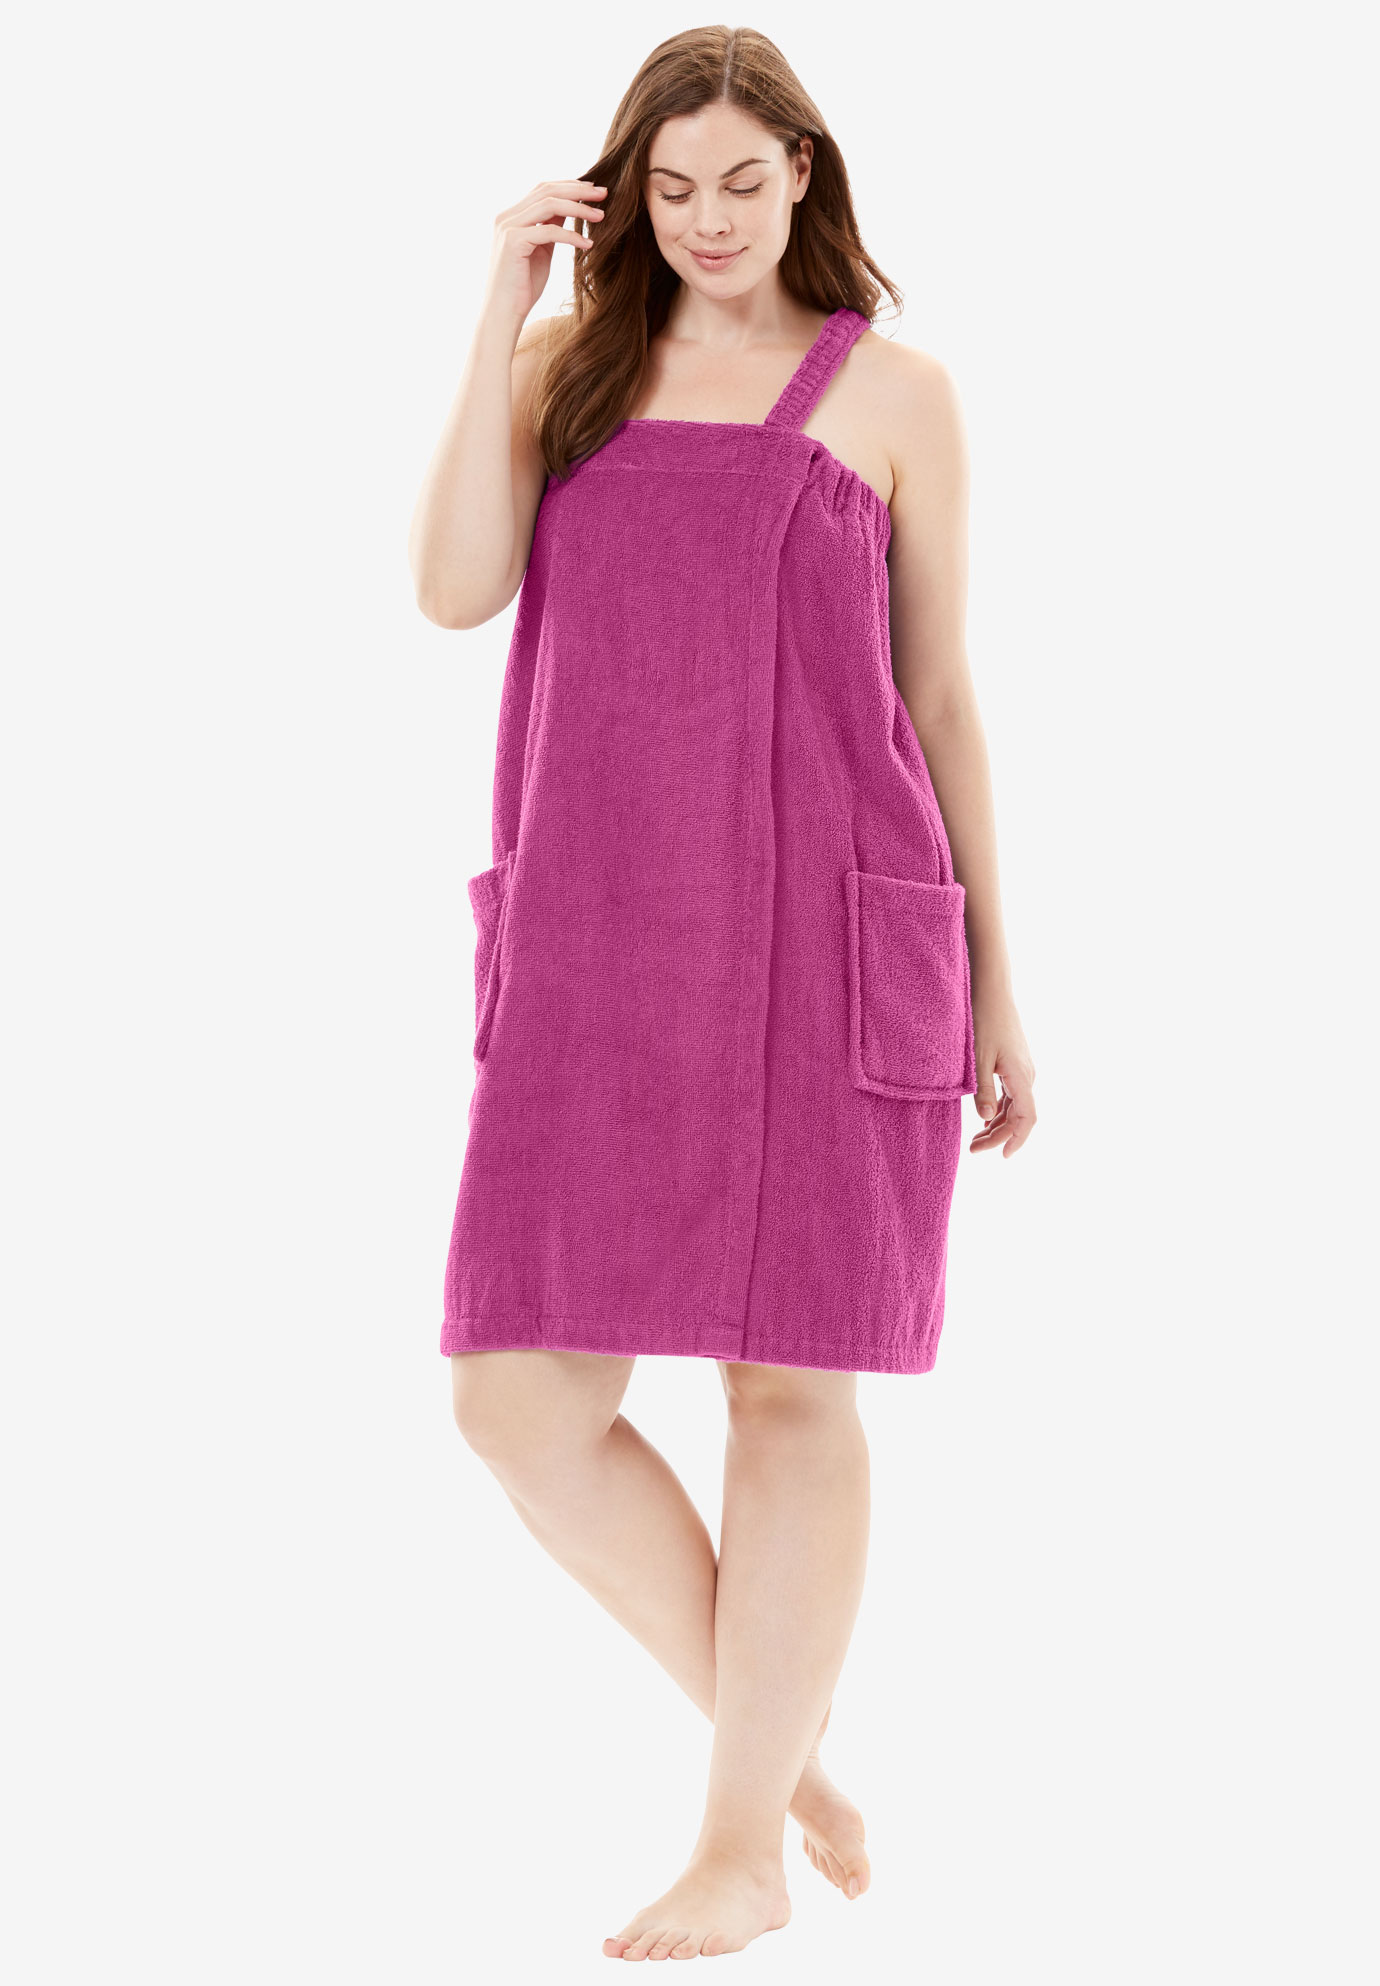 Wearable Towel By Dreams & Co., BRIGHT BERRY, hi-res